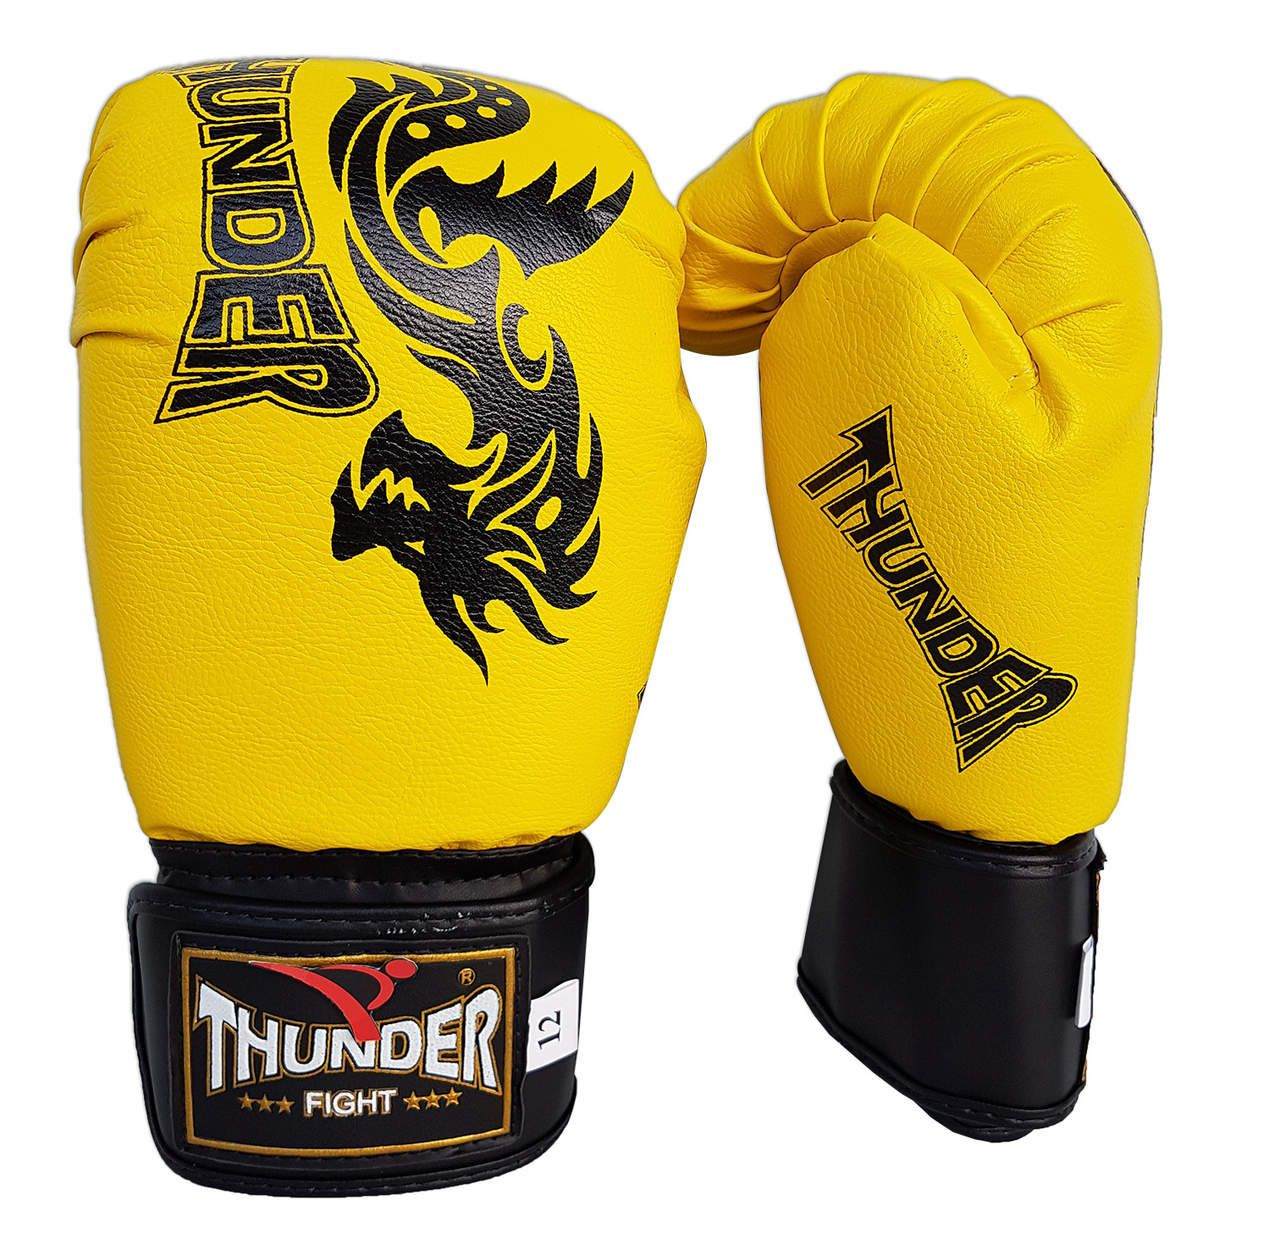 Luva de Boxe / Muay Thai 12oz - Dragão Amarelo - Thunder Fight  - PRALUTA SHOP